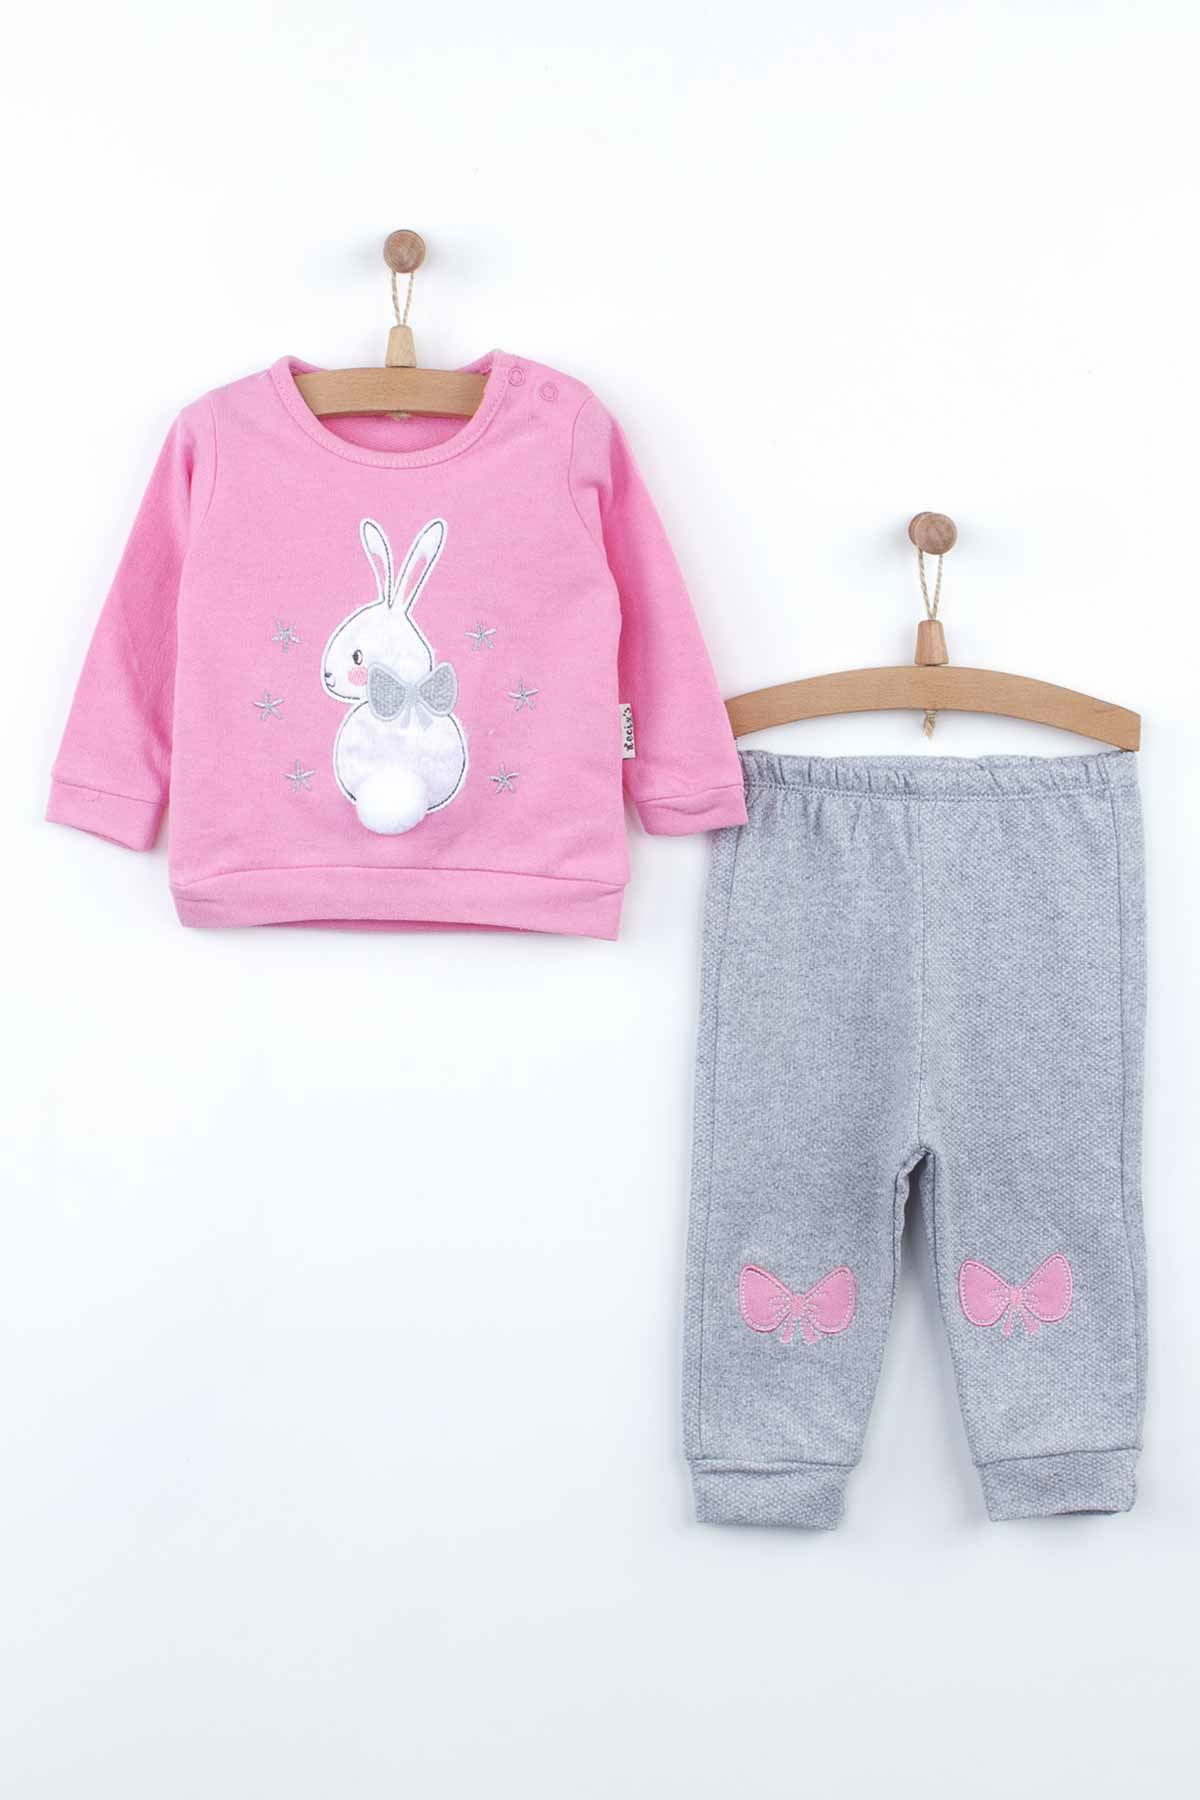 Pink Baby Girl Tracksuit Sweatshirts Suit 2 Piece Set Cute Babies Pajamas Cotton Casual Wear Outfit Girls Babies Model